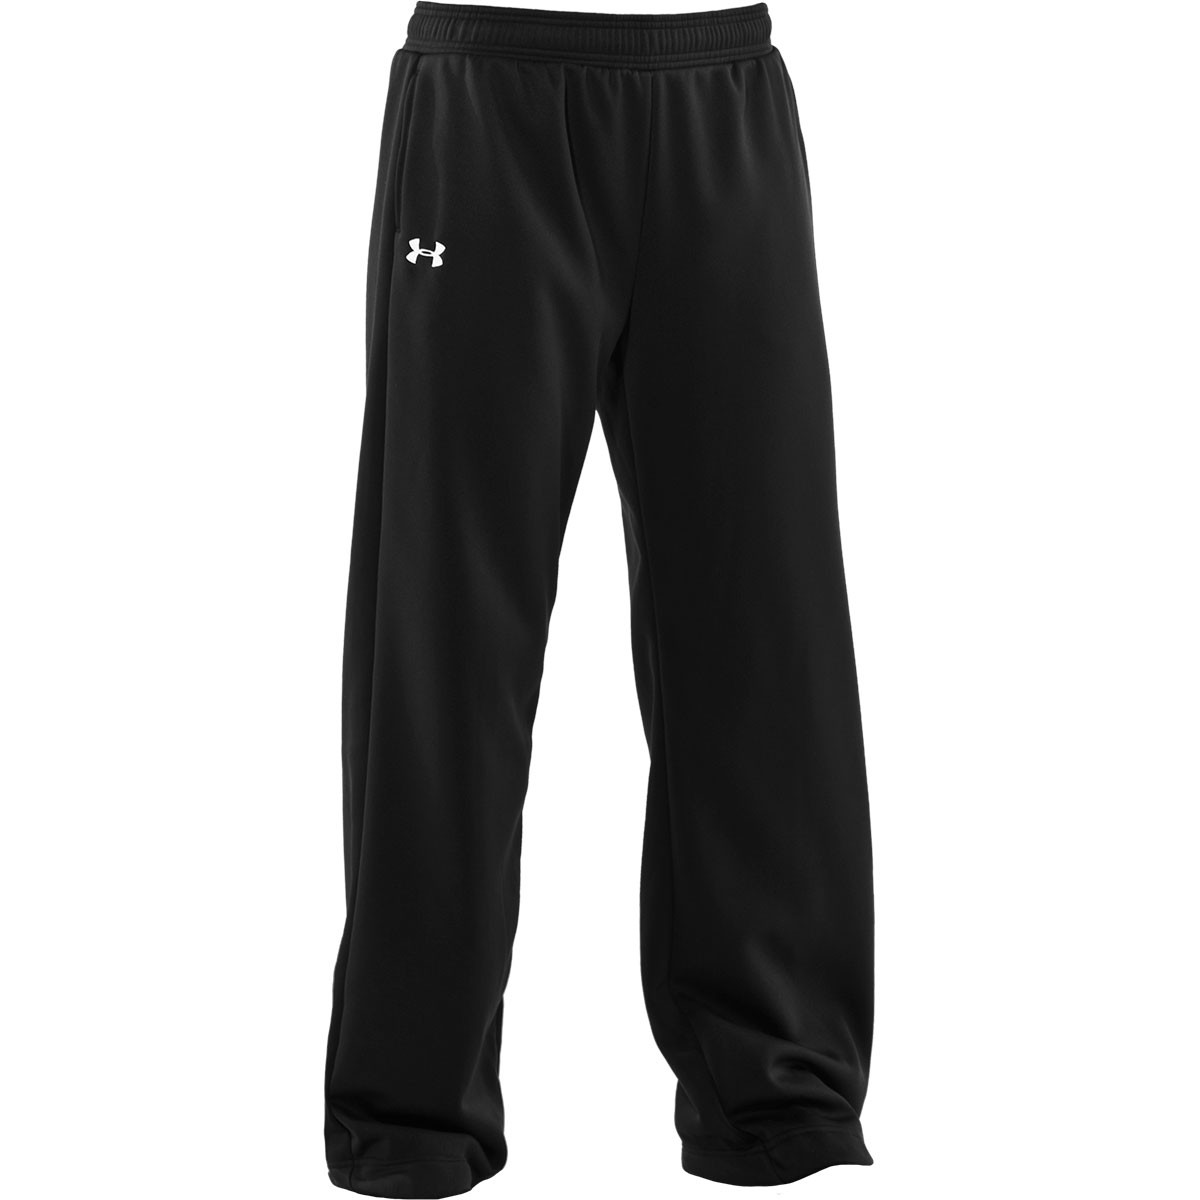 Simple Under Armour Women S Armour Fleece Pant Under Armour Women S Armour